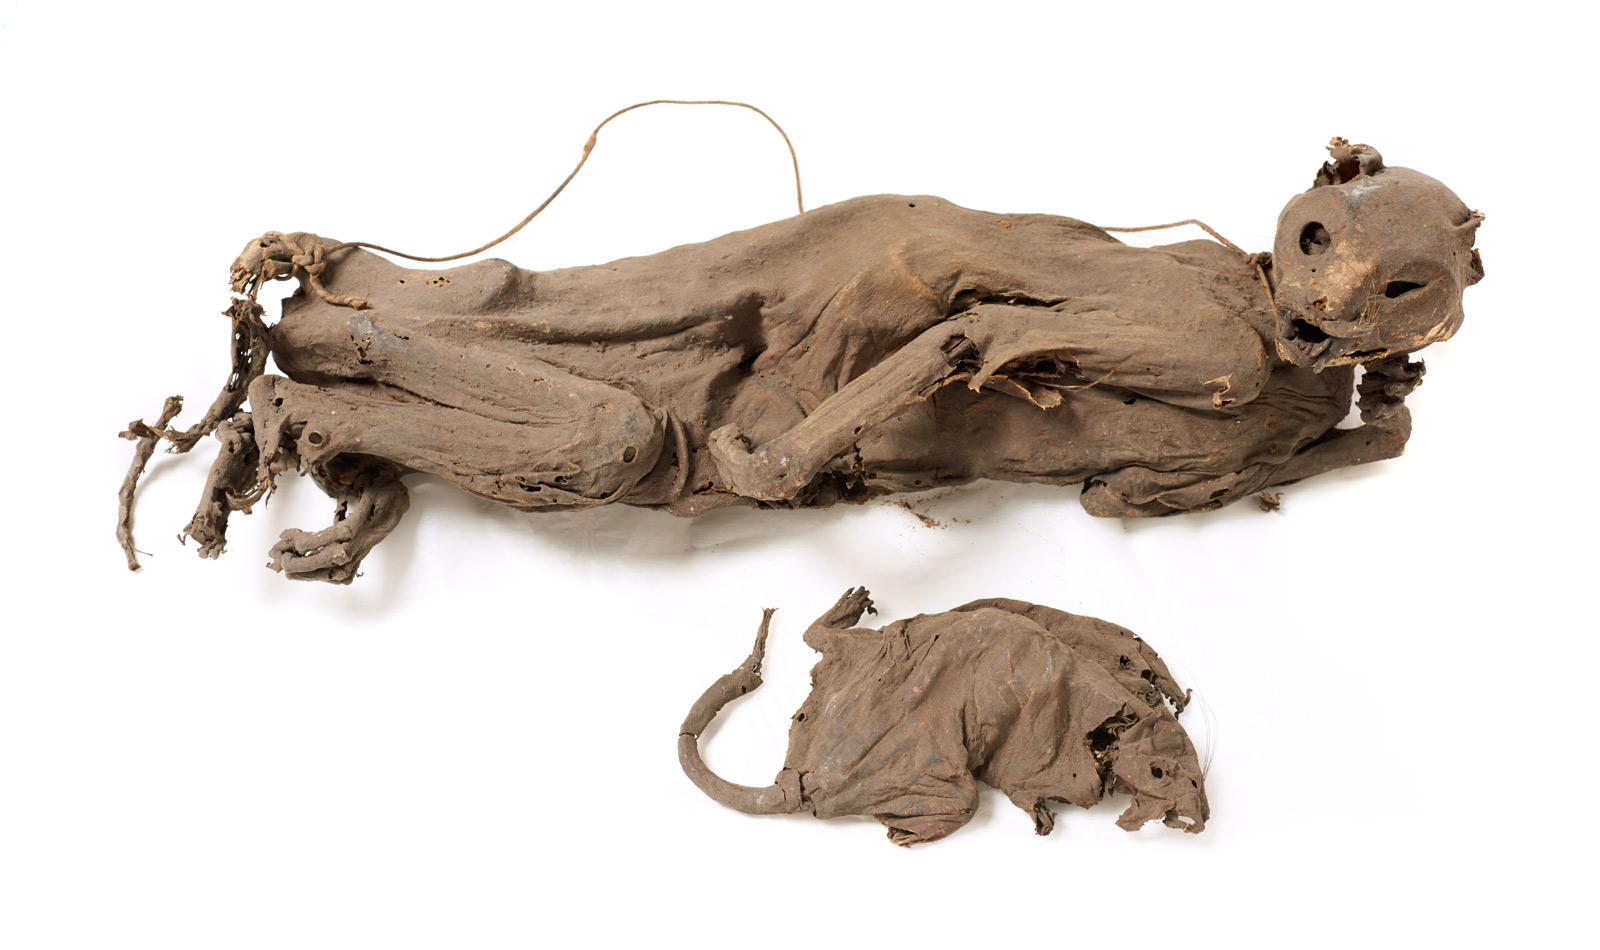 Mummified cat found in a London dock warehouse.